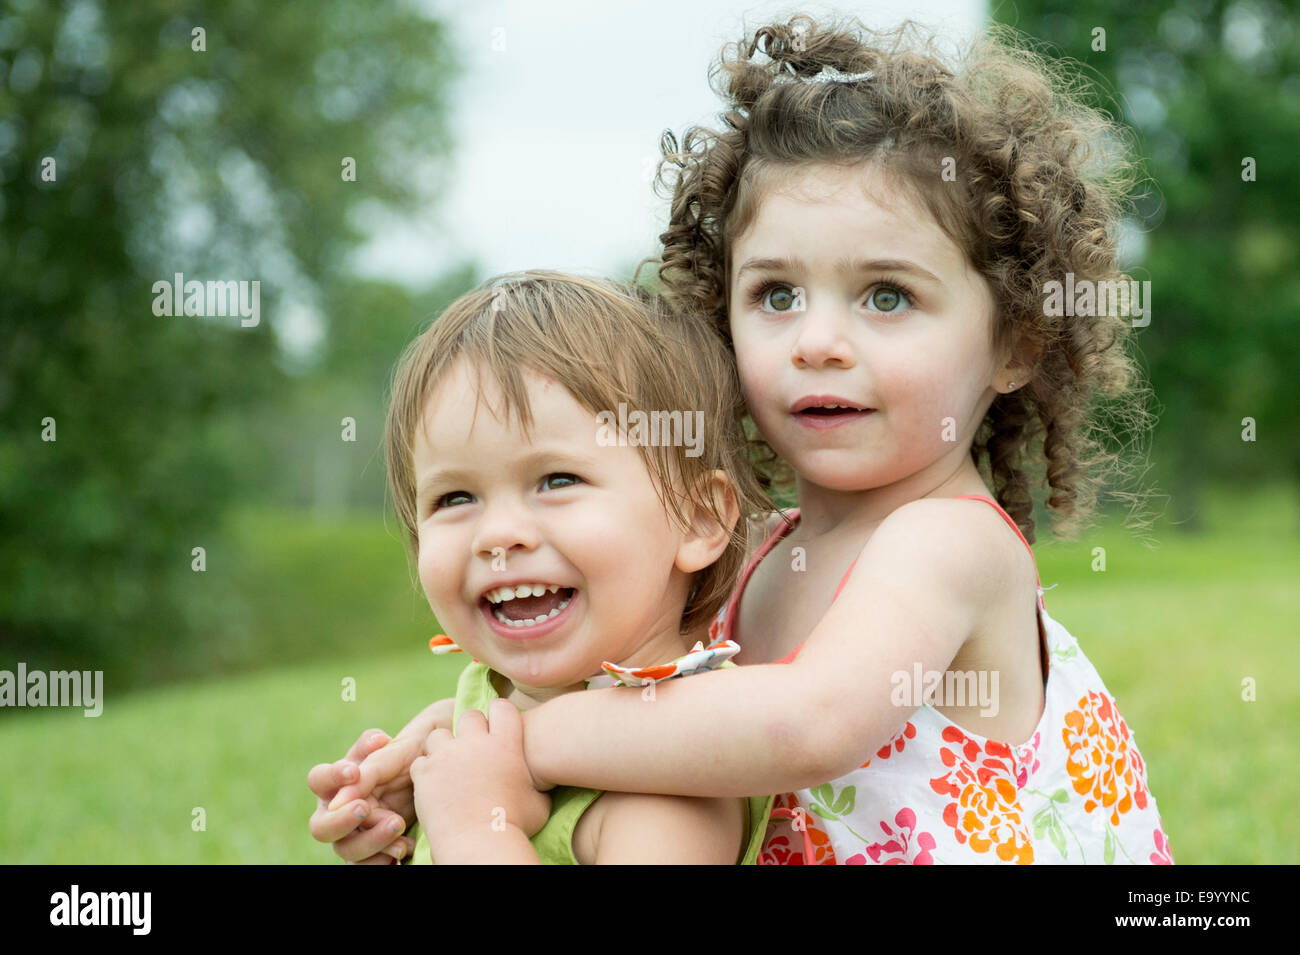 Portrait of two toddlers, playing - Stock Image